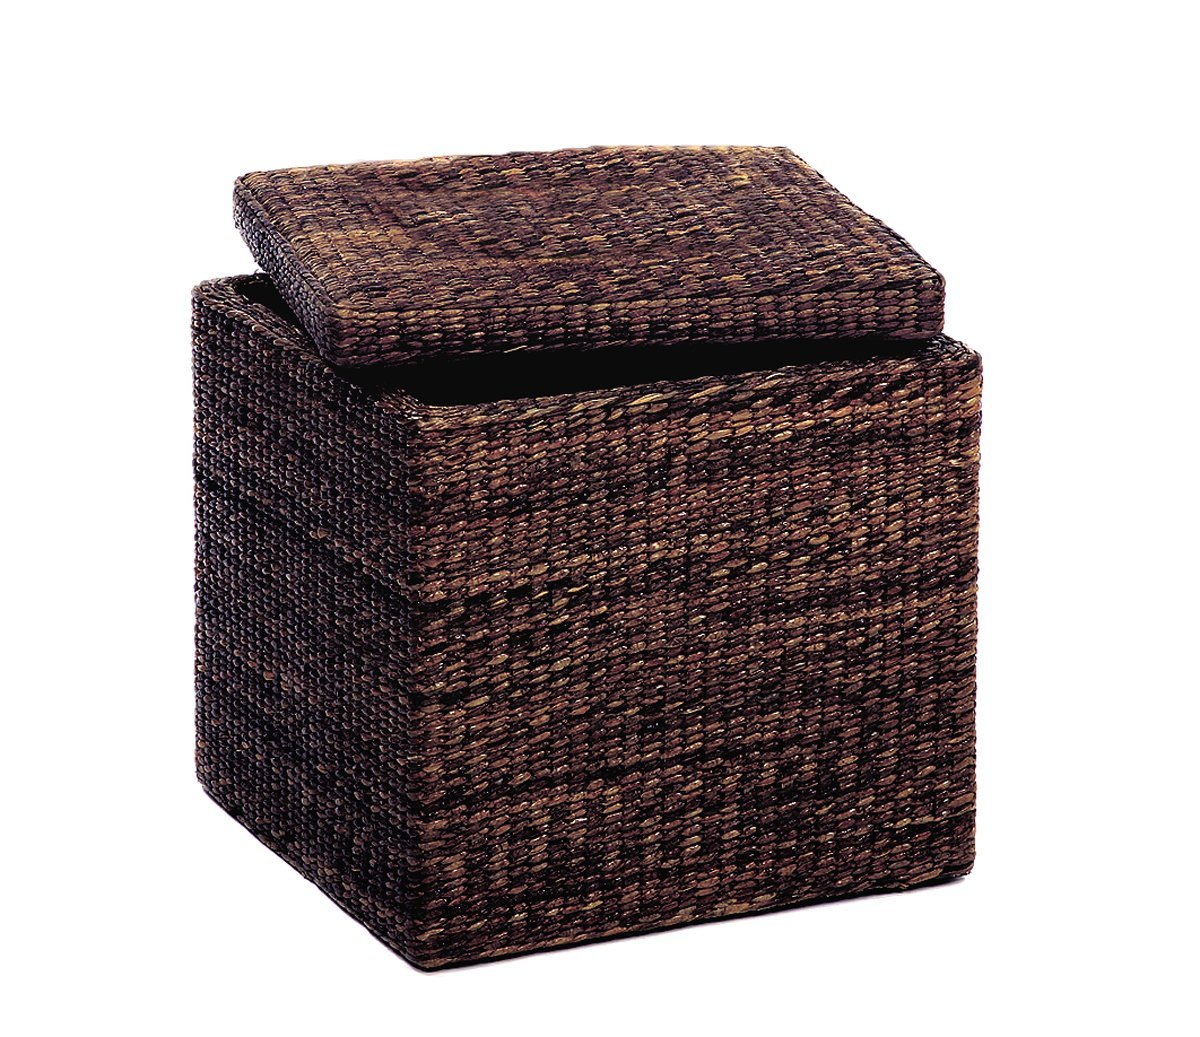 Storage Cube Ottomans | Storage Cube Ottoman | Storage Ottomans for Sale